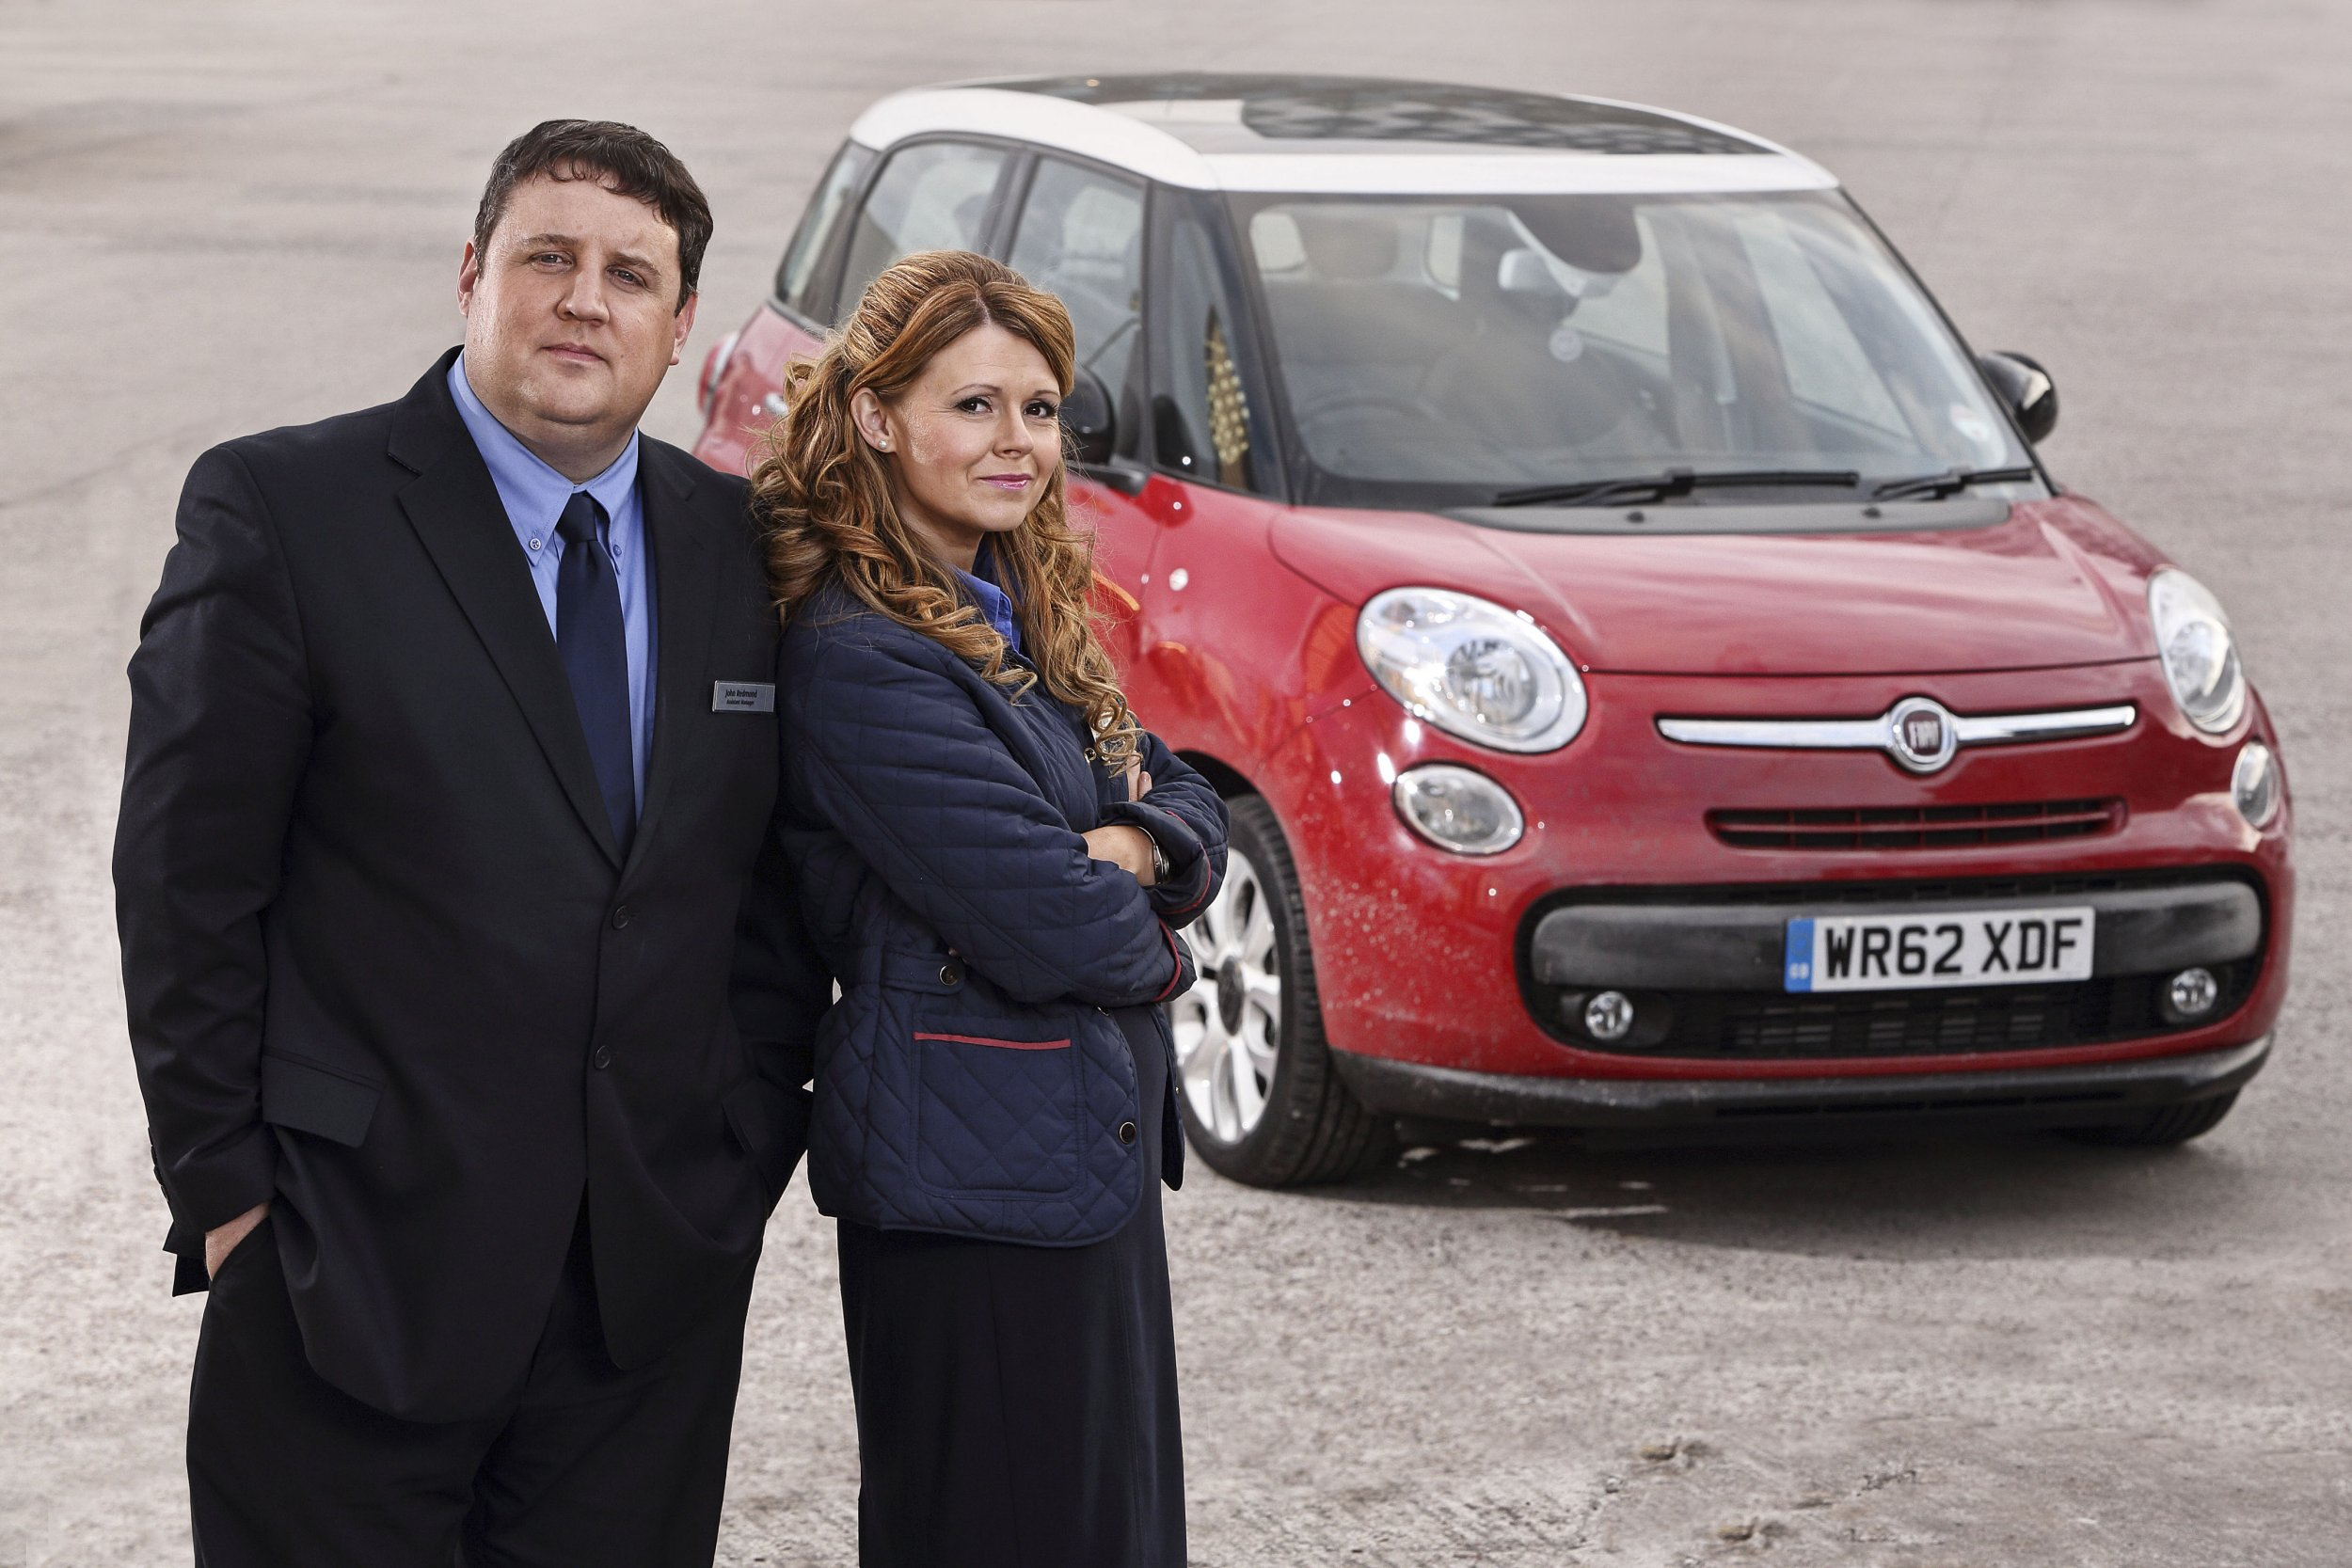 When is Peter Kay's Car Share series 2?